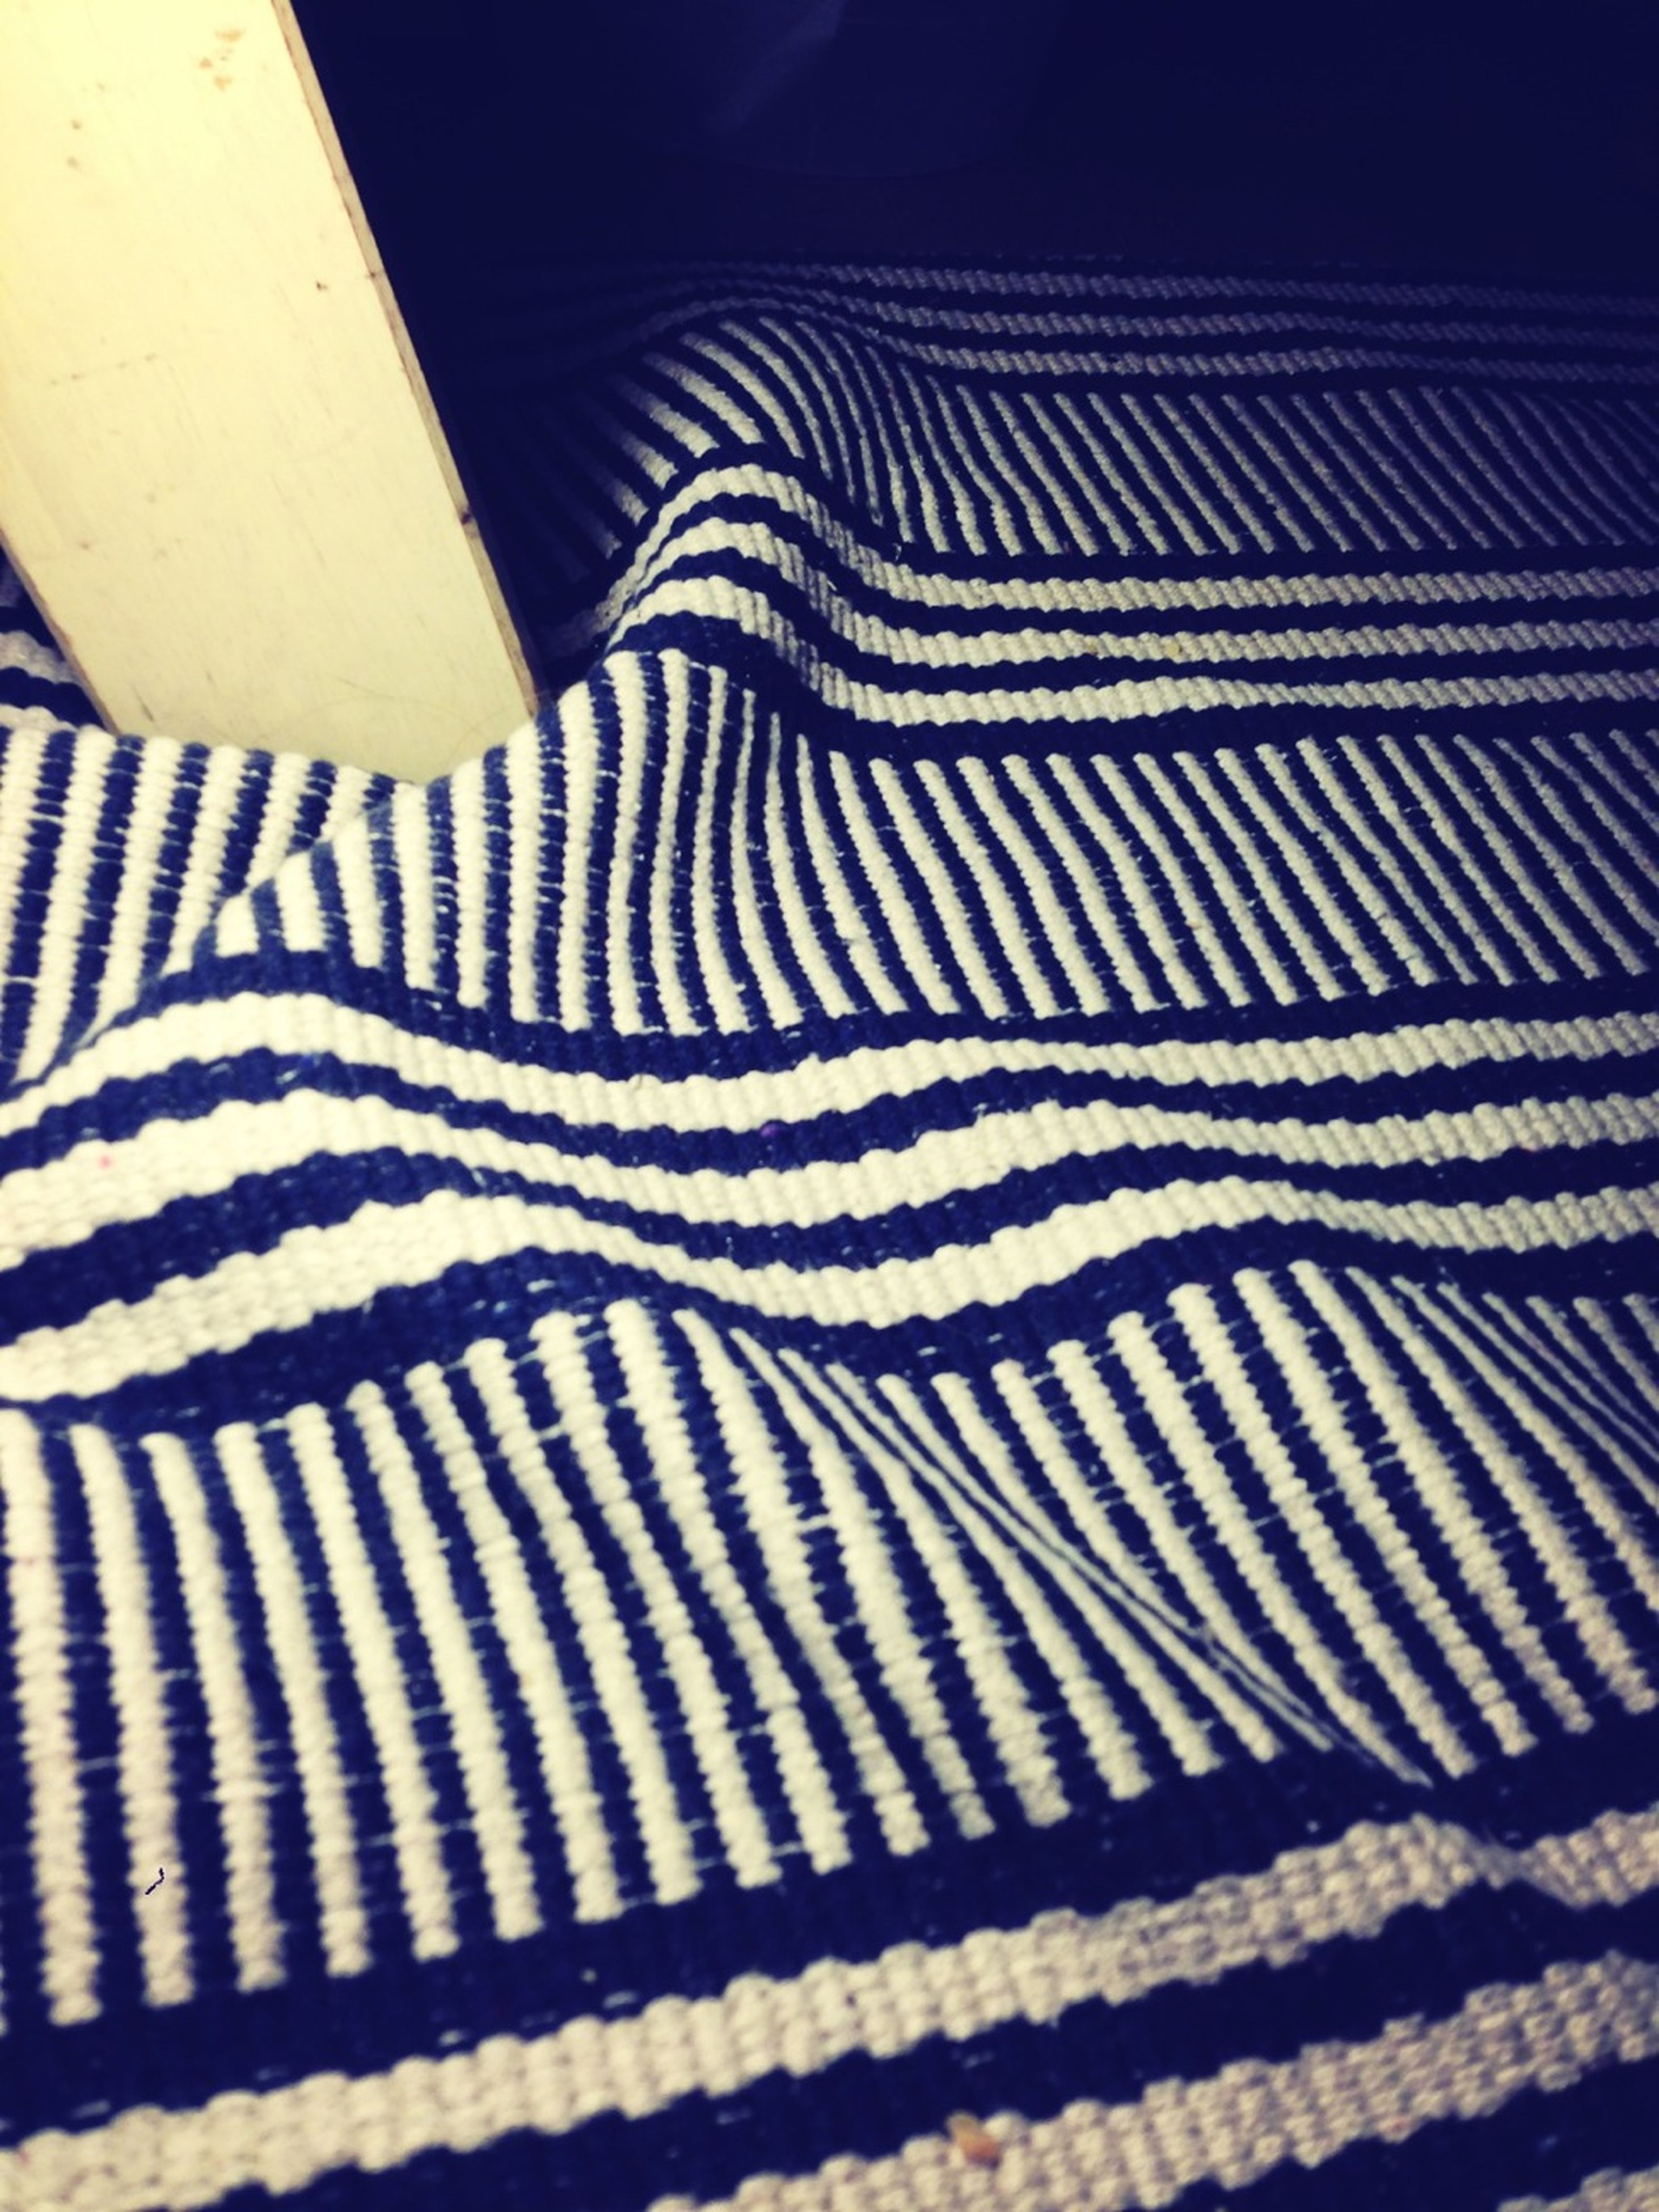 striped, pattern, indoors, animal themes, high angle view, one animal, zebra, no people, blue, close-up, design, white color, day, sunlight, fabric, textile, part of, relaxation, shadow